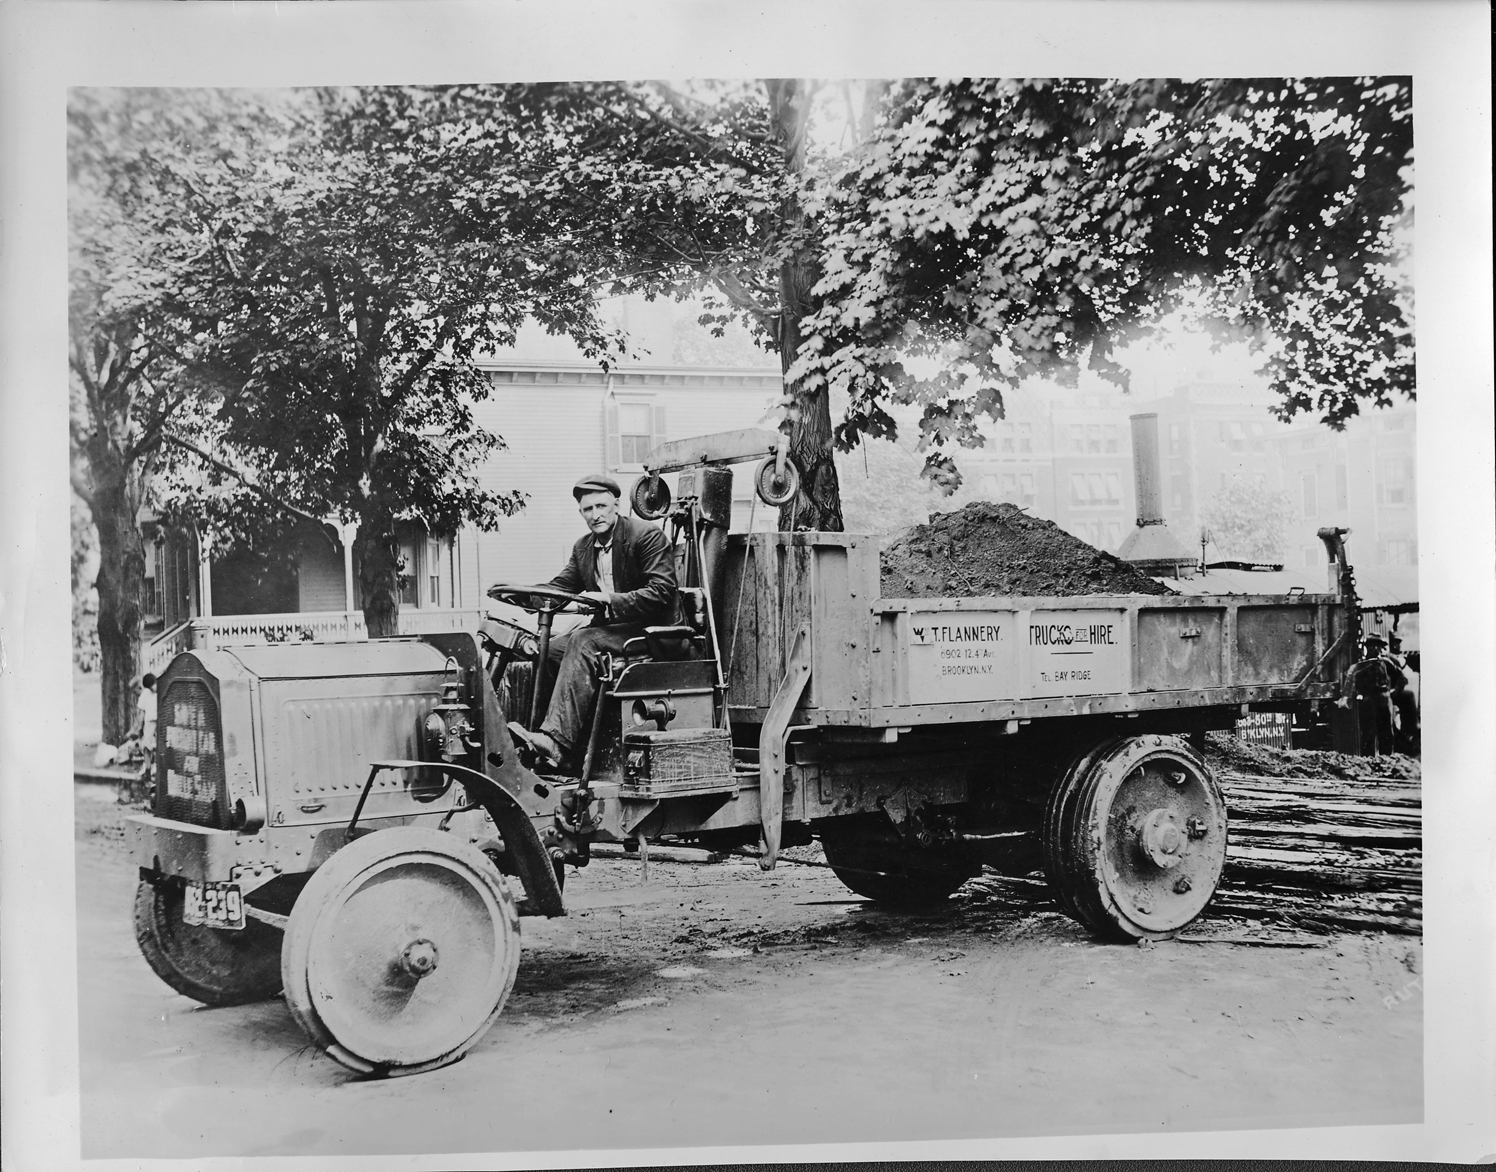 Truck-Ology: Another Look Into The History Of Trucks – A Fresh Load Of 100 Year Old Photos!